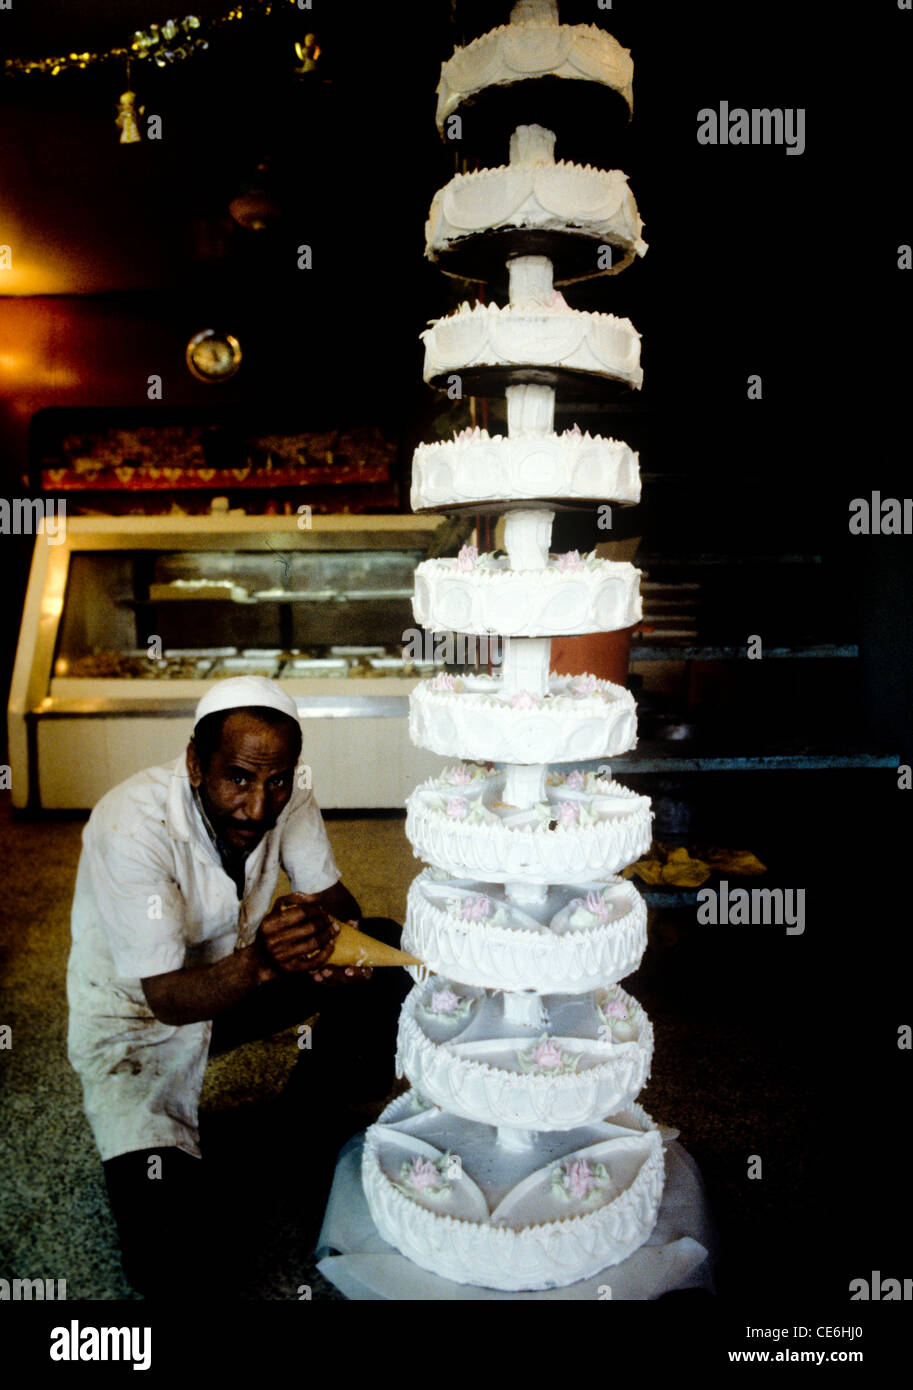 Cake maker decorates multi tiered wedding cake at bakery in Baghdad